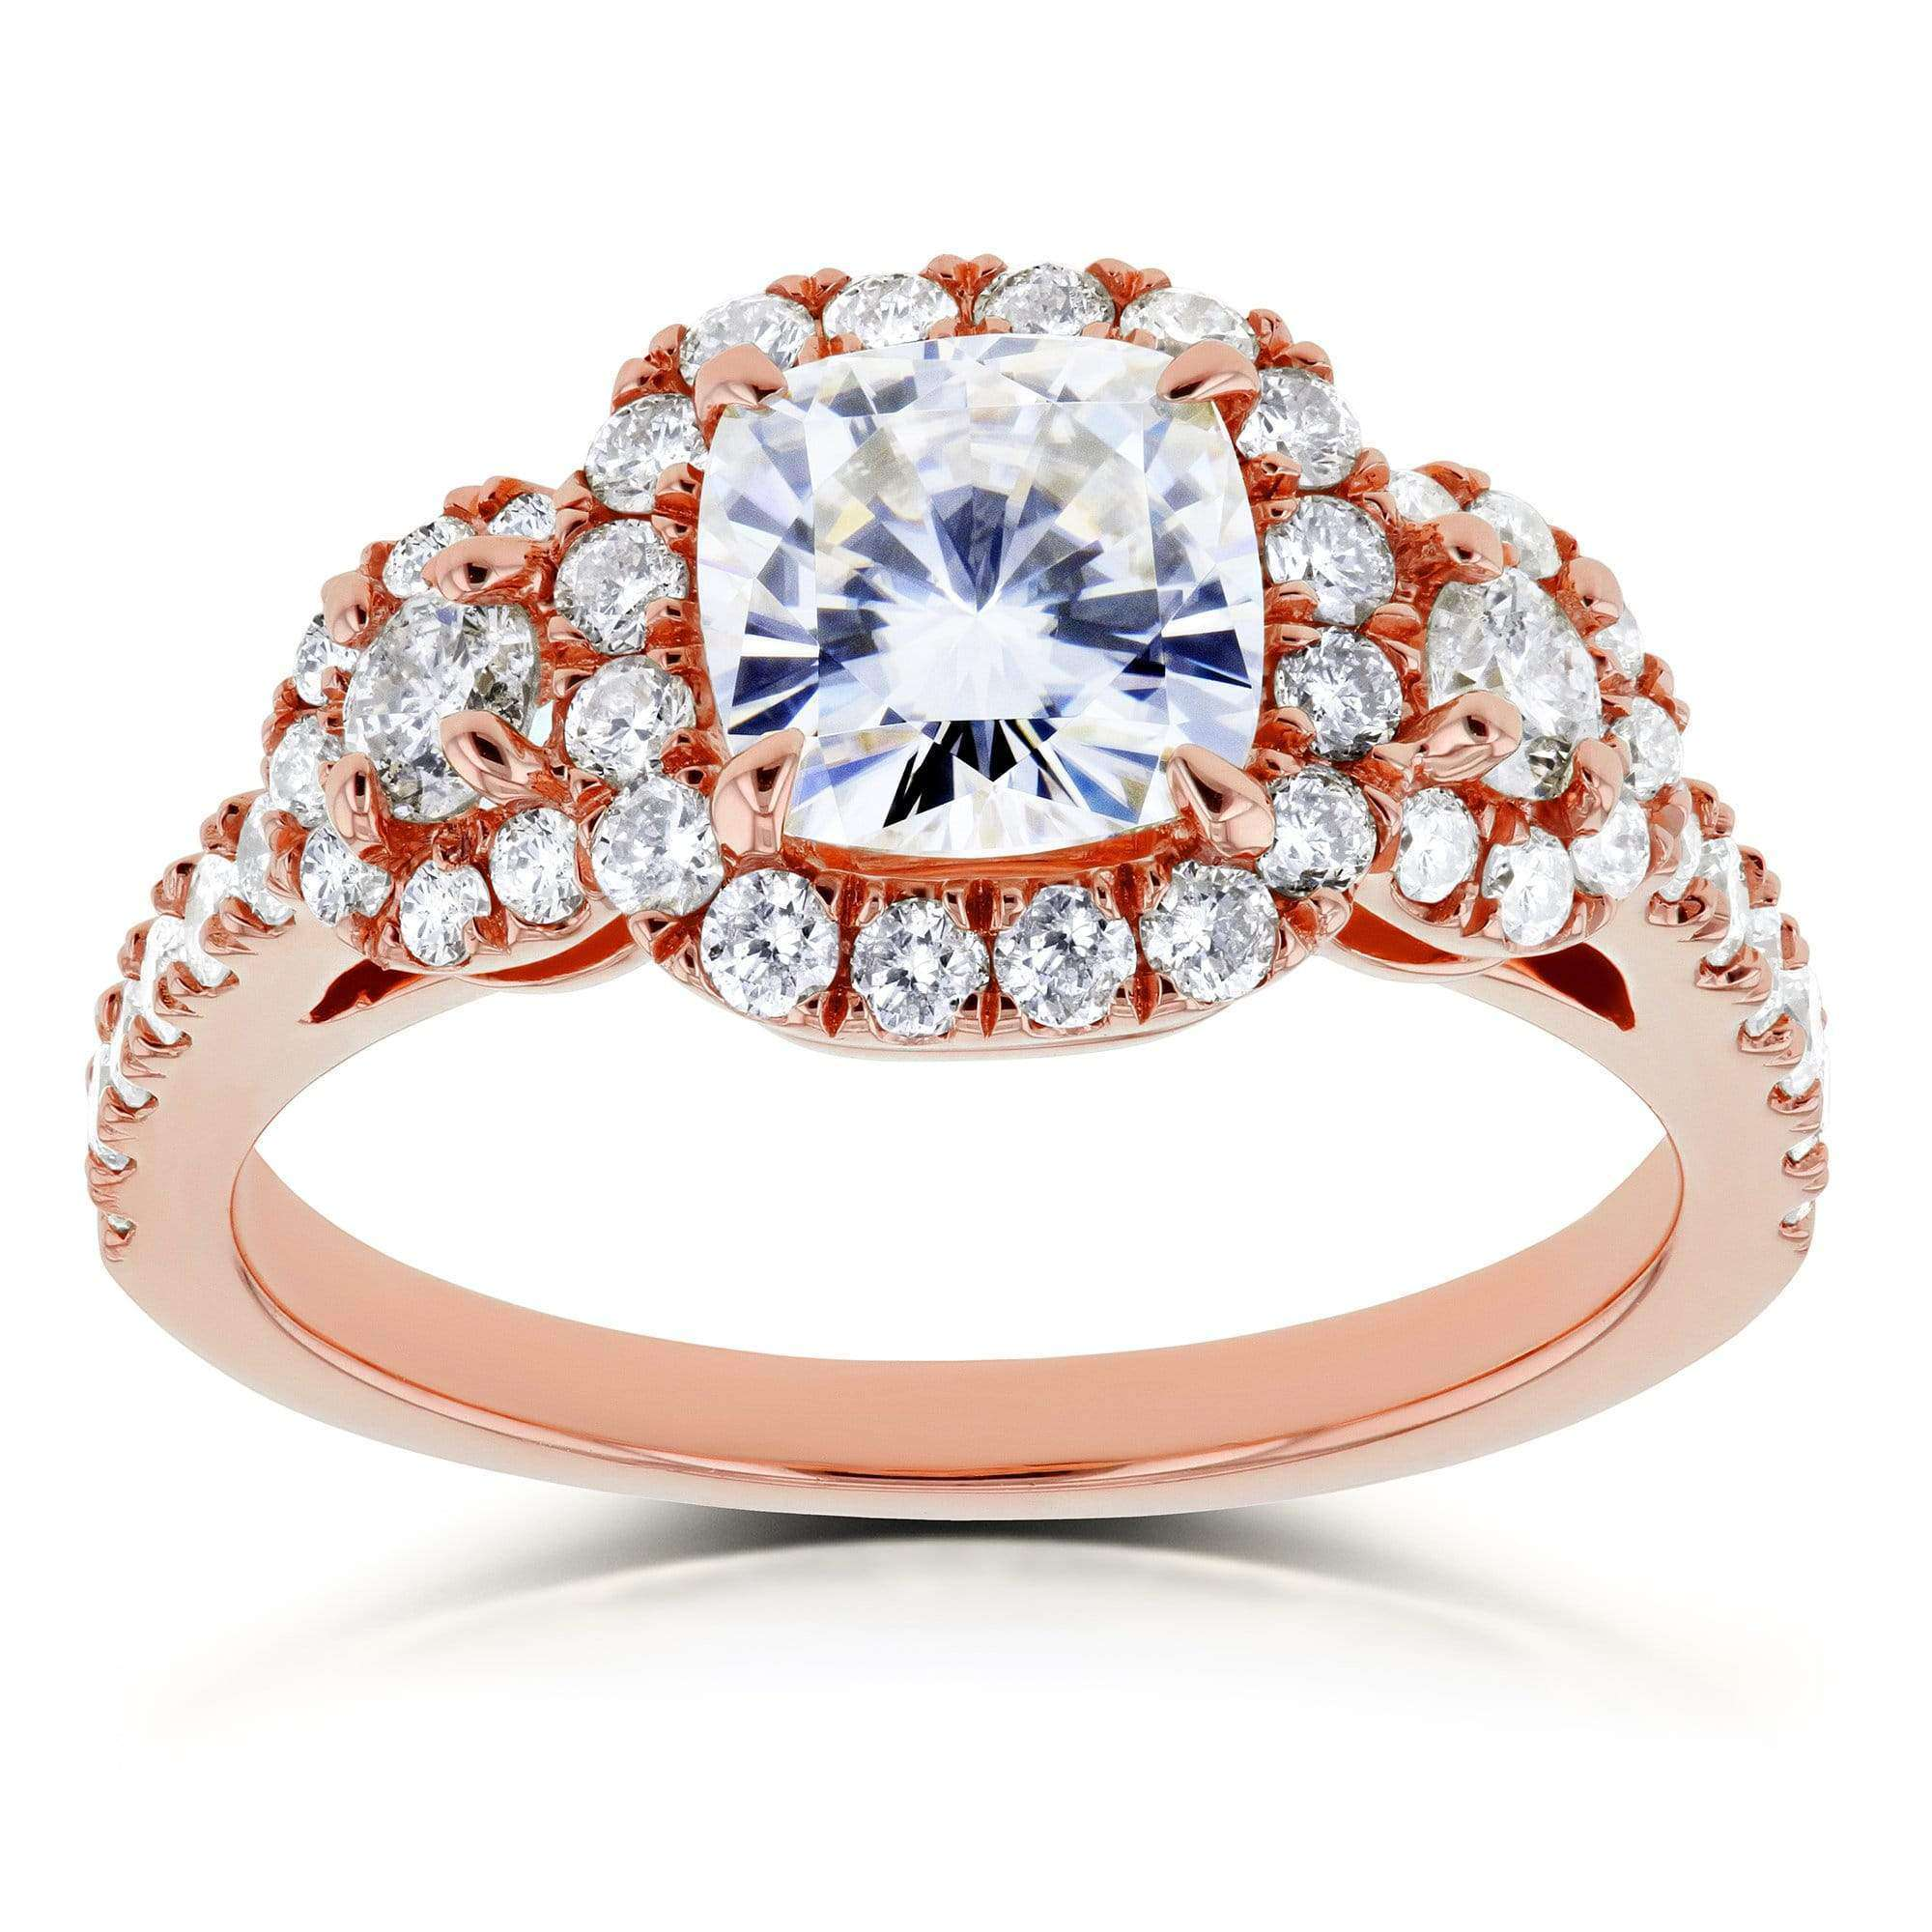 Compare Near-Colorless (F-G) Cushion Moissanite and Diamond Engagement Ring 1 7/8 CTW in 14k Rose Gold - 9.5